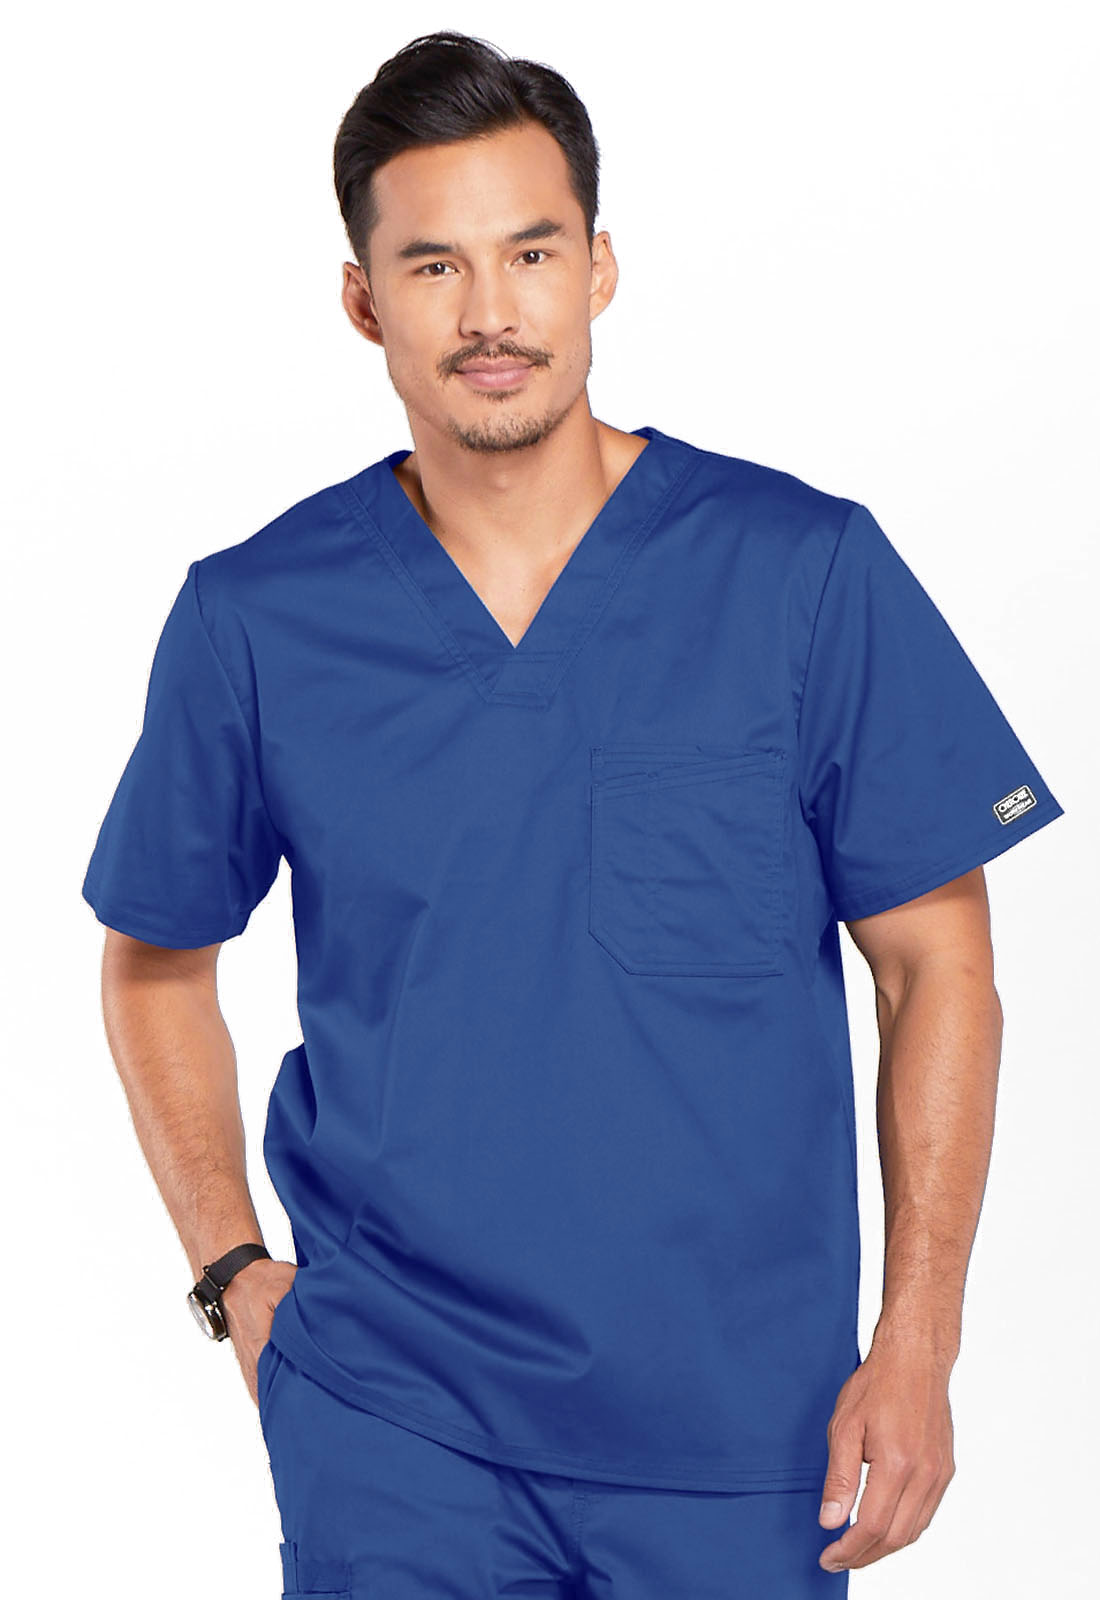 2c861dd9c2c WW Core Stretch Men's V-Neck Top in Galaxy Blue 4743-GABW from ...